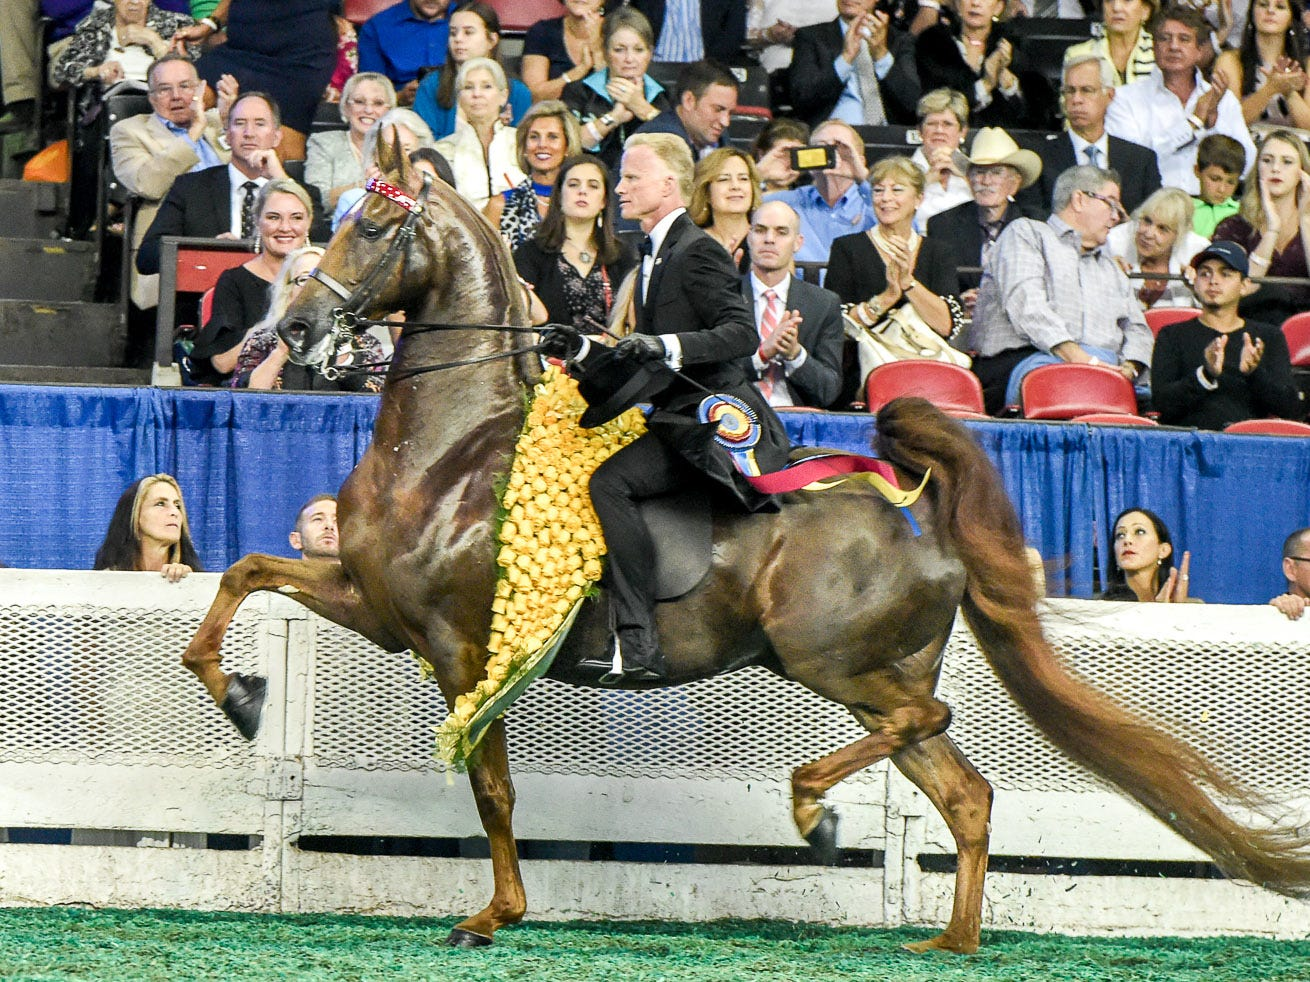 3 GAITED GRAND CHAMPIONSHIP winner Tango's Token Kiss (124817G) (WGC, WC, RWGC) 2012 Tango's Parting Kiss (111171S) X CF Deny Me Not (135288M)1 Owner: Grace Arnold LLC Rancho Santa Fe, CA Breeder: Harrison Shiflet and/or Beverly Shiflet Exhibitor: Smith LillyTrainer: Smith Lilly